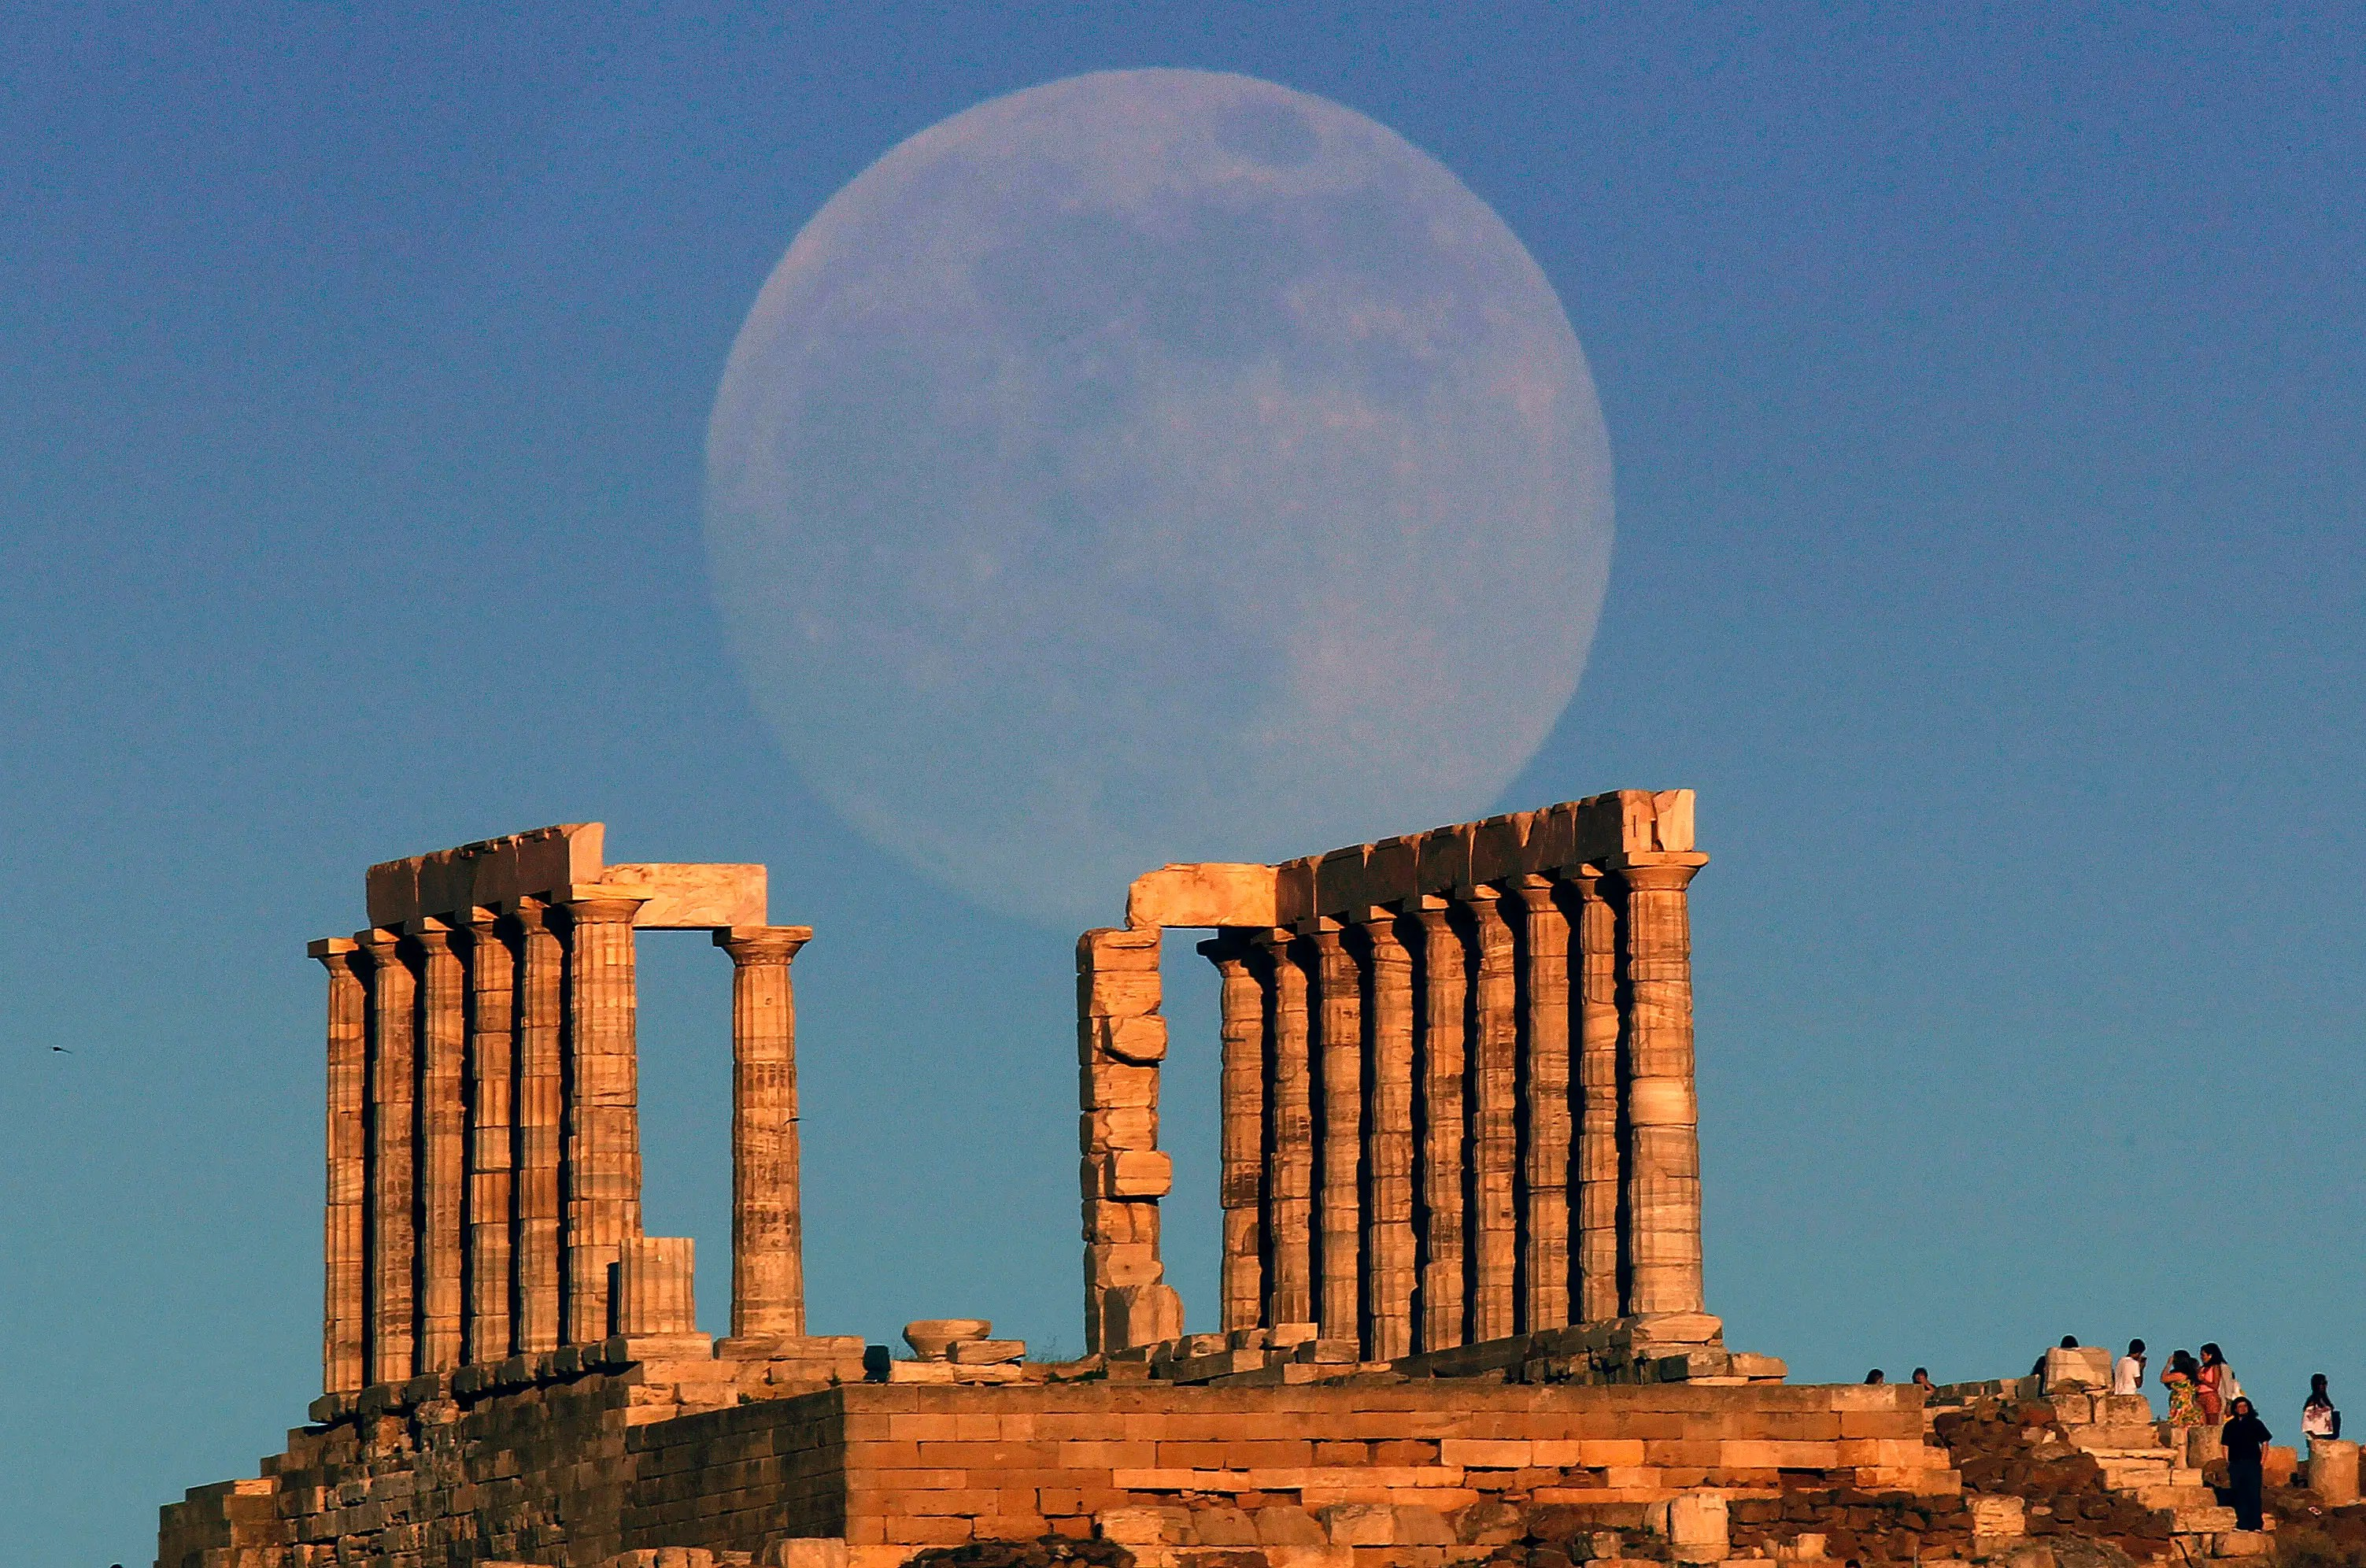 The supermoon rises over the temple of Poseidon, the ancient Greek god of the seas, in Cape Sounion, Greece.